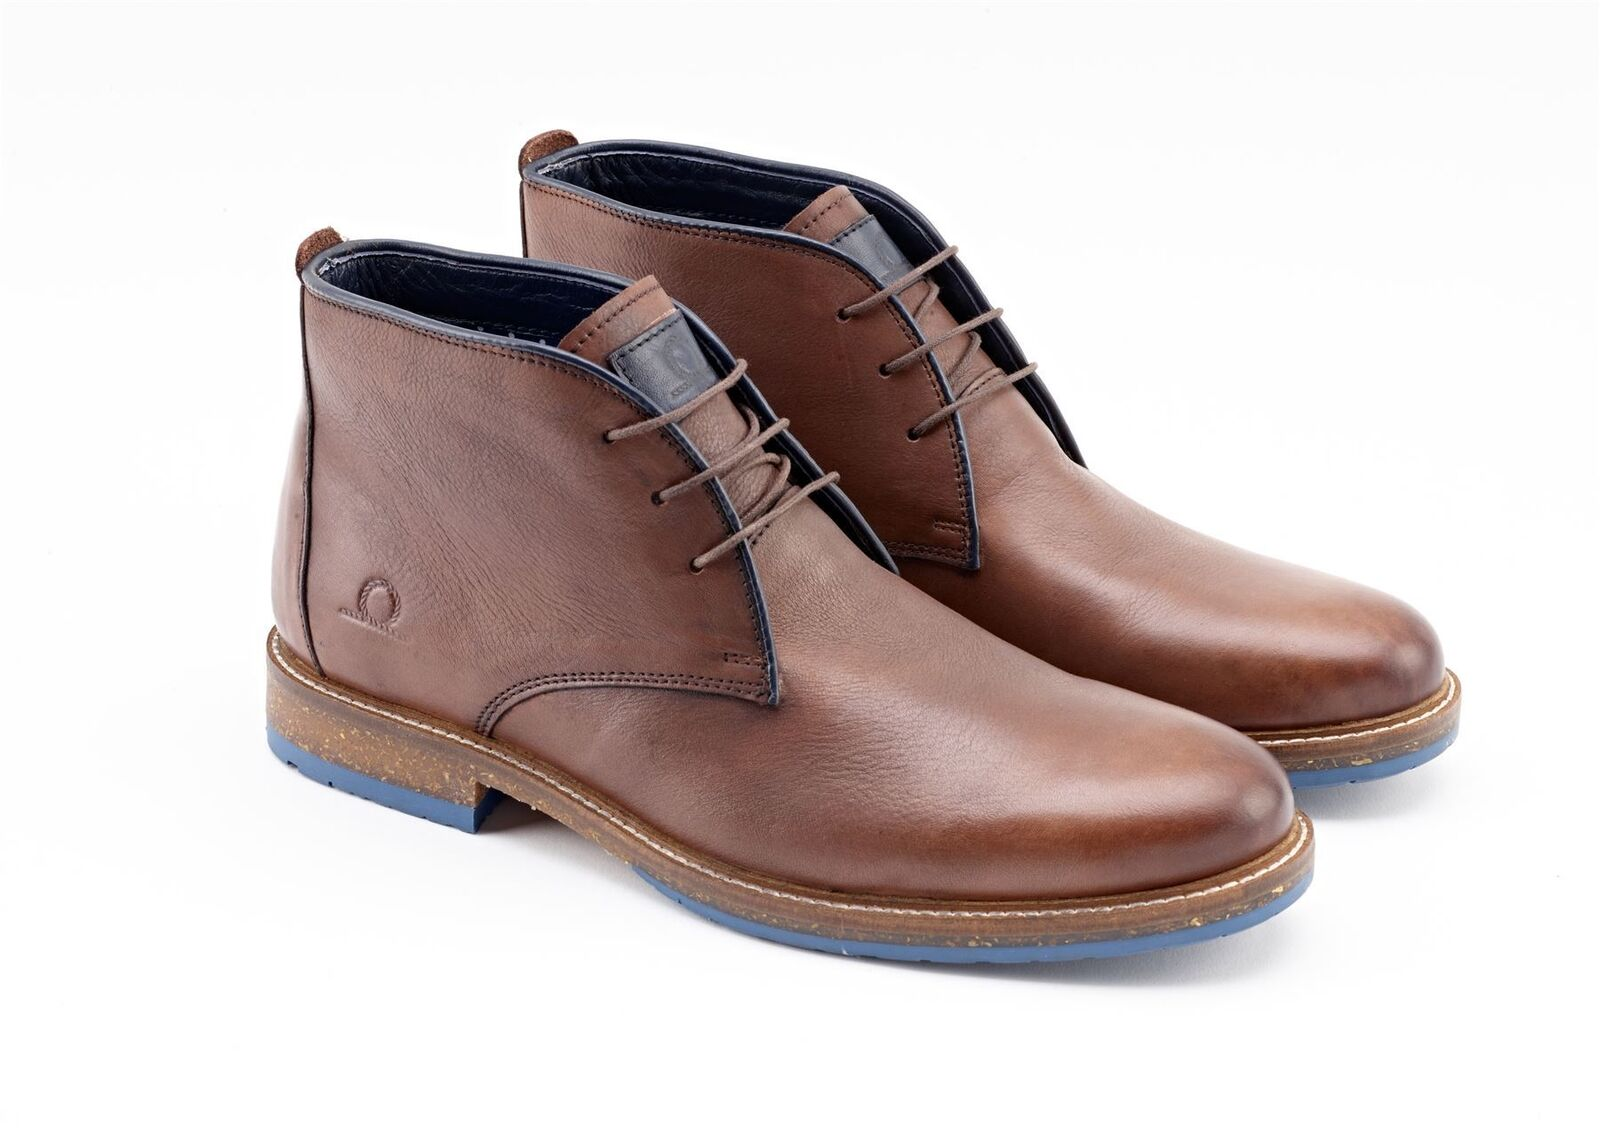 Chatham Chatham Chatham Perry Chukka in Pelle-Marrone f0cd01